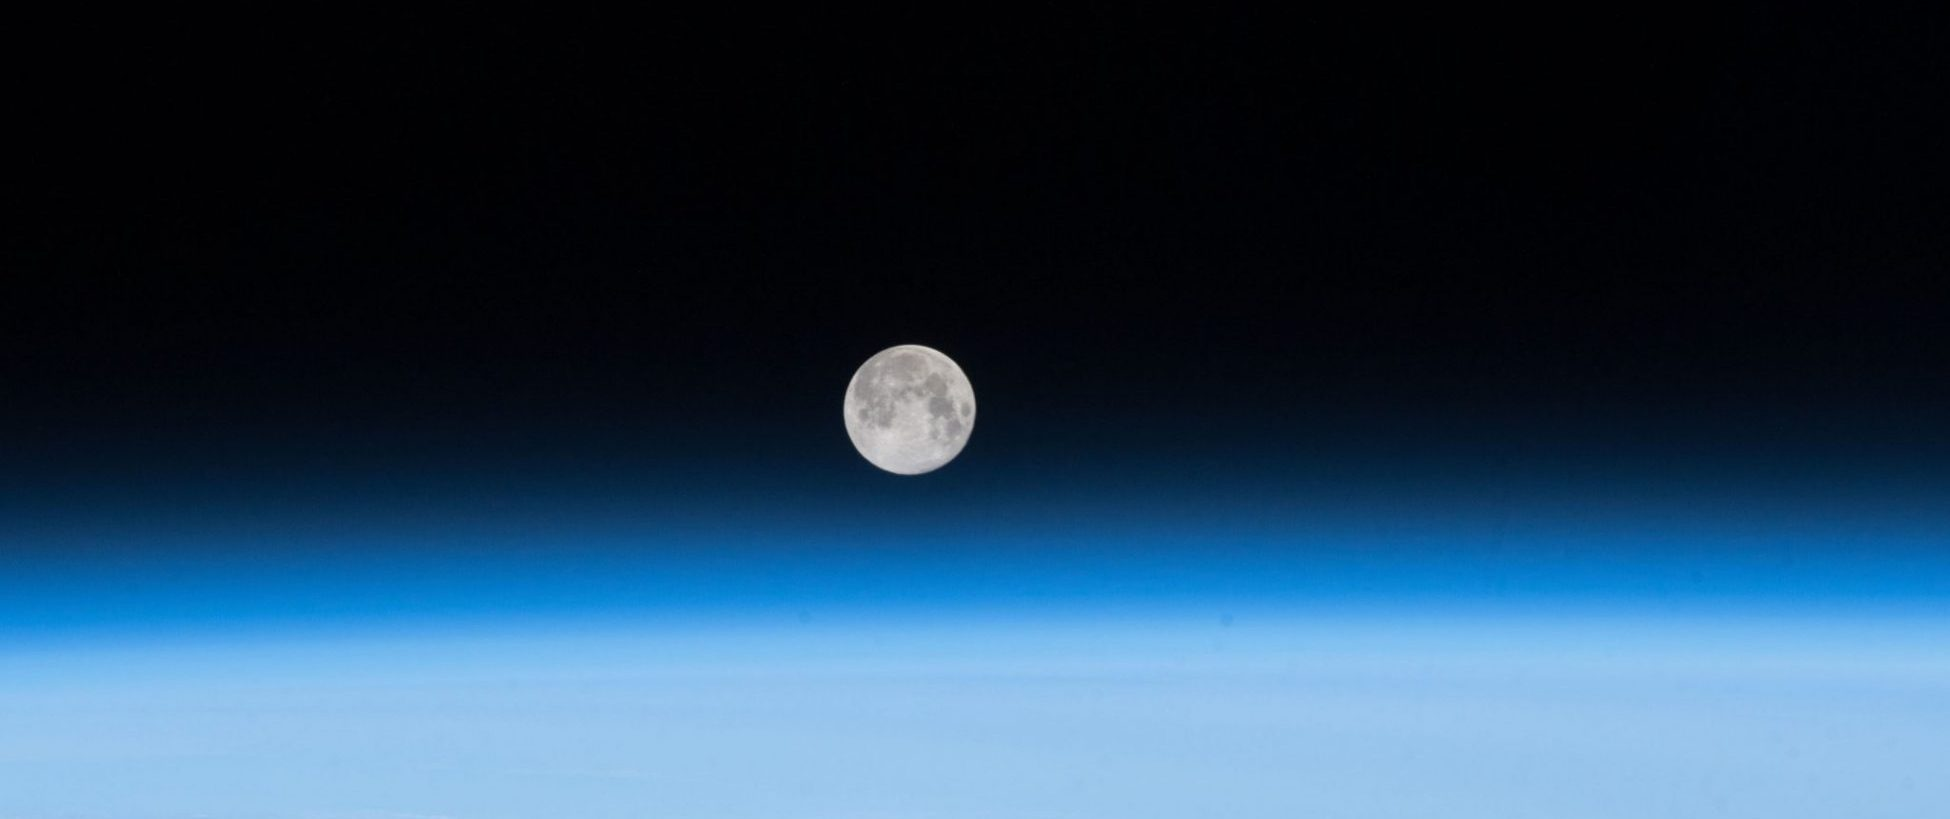 Image of Earth's Moon taken from the International Space Station